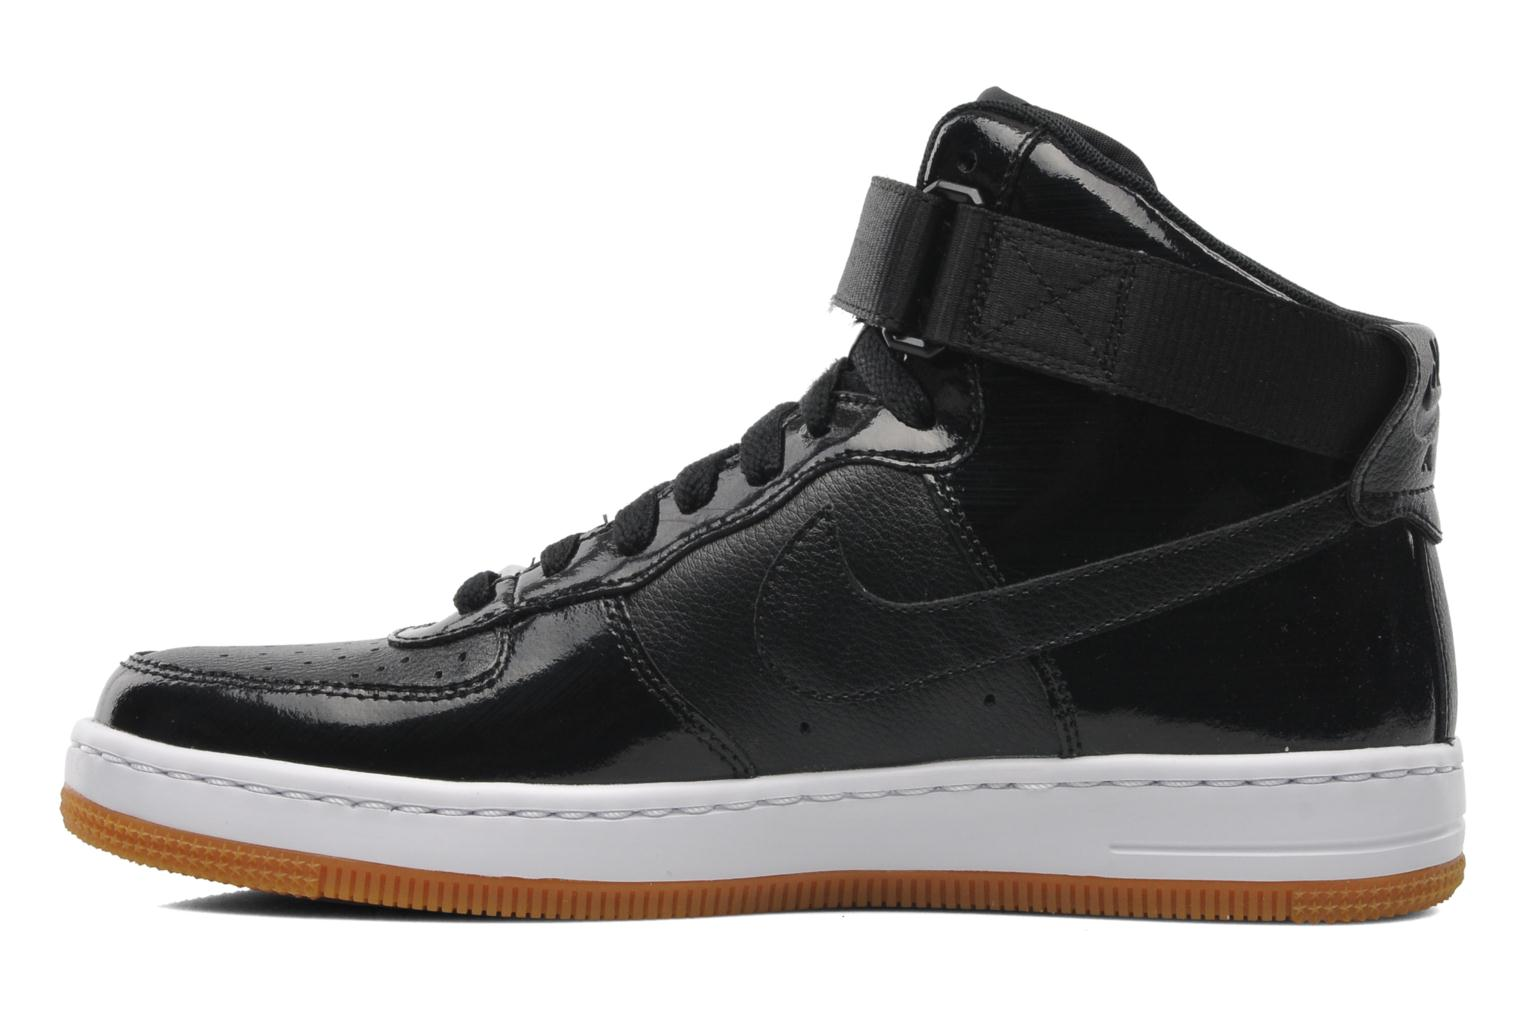 nike w nike air force 1 ultra force mid trainers in black at 199000. Black Bedroom Furniture Sets. Home Design Ideas